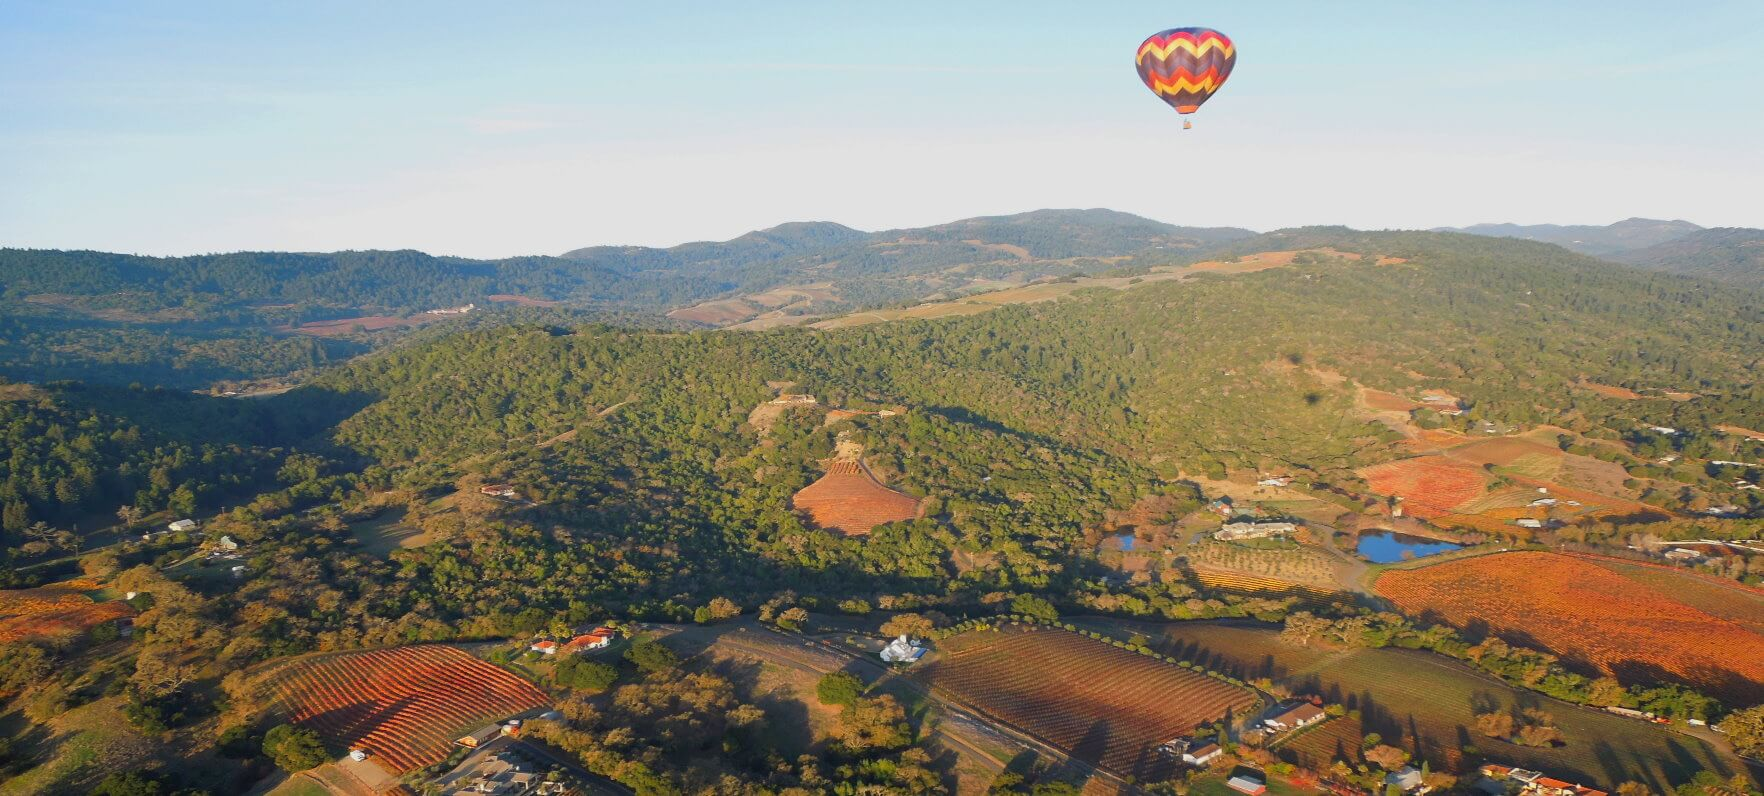 best_hot_air_balloon_rides_over_napa_valley